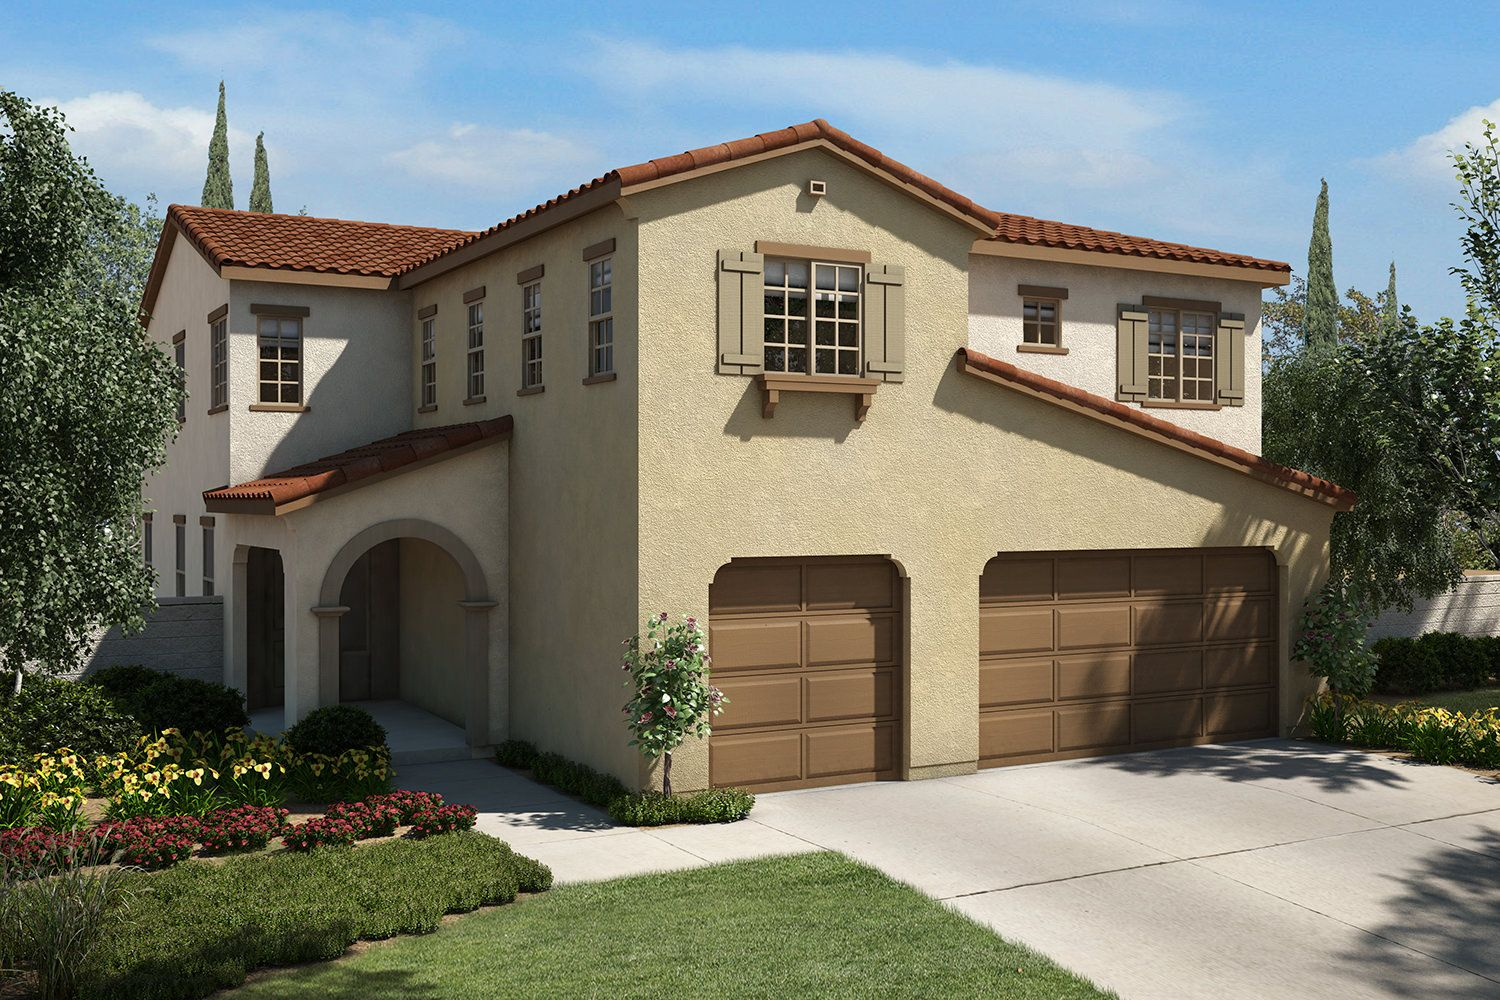 Lake Elsinore Real Estate And Homes For Sale 187 Topix